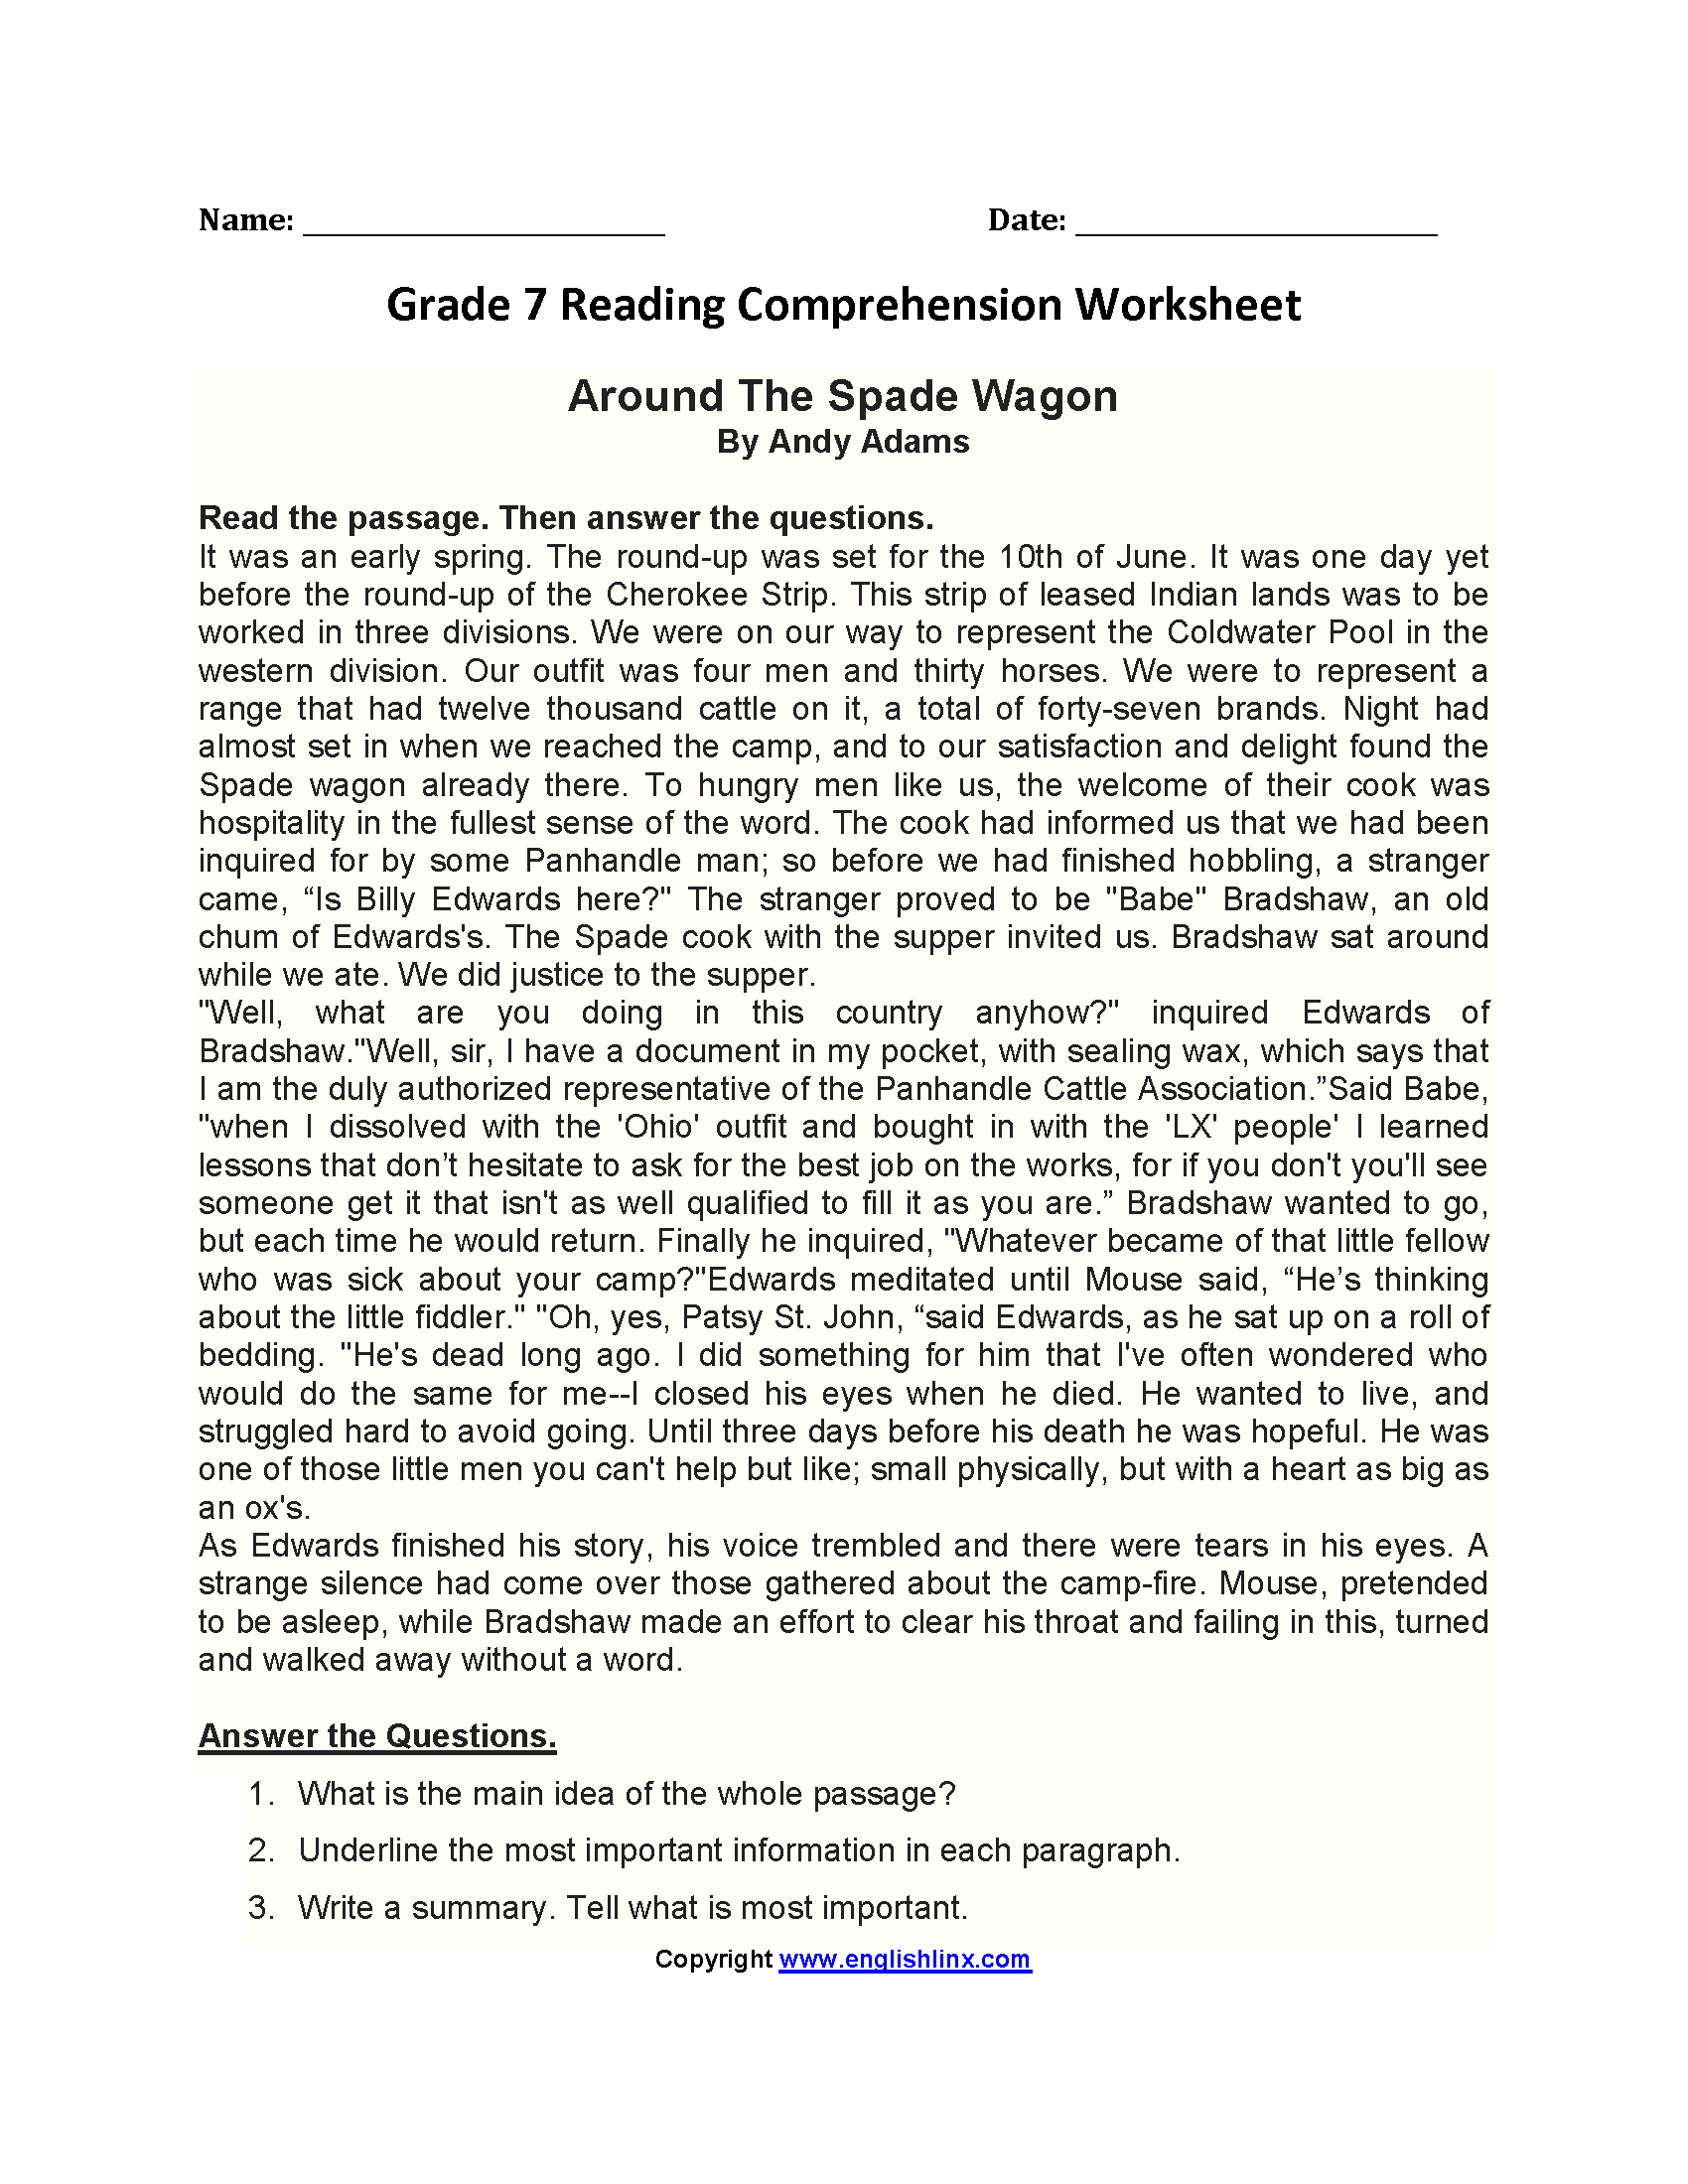 small resolution of Around the Spade Wagon\u003cbr\u003eSeventh Grade Reading Worksheets   Reading  worksheets